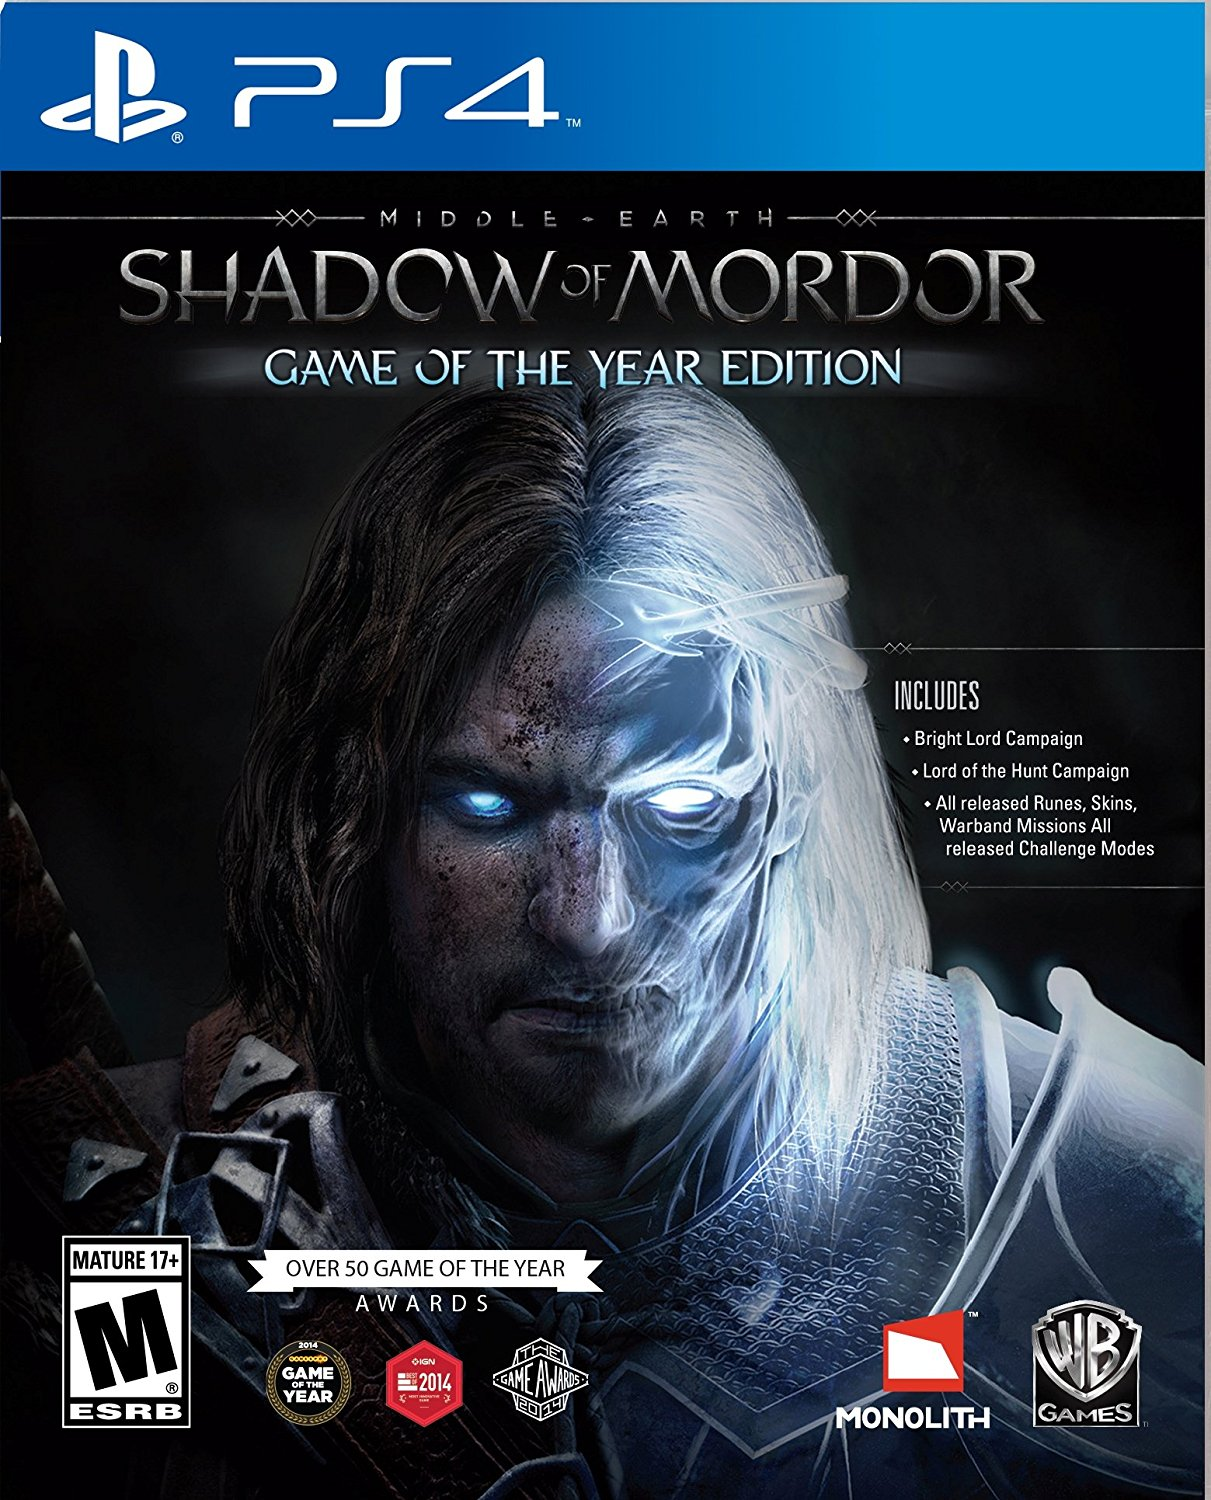 Middle-earth: Shadow of Mordor (Средиземье: Тени Мордора) – GOTY (Game of the Year Edition)